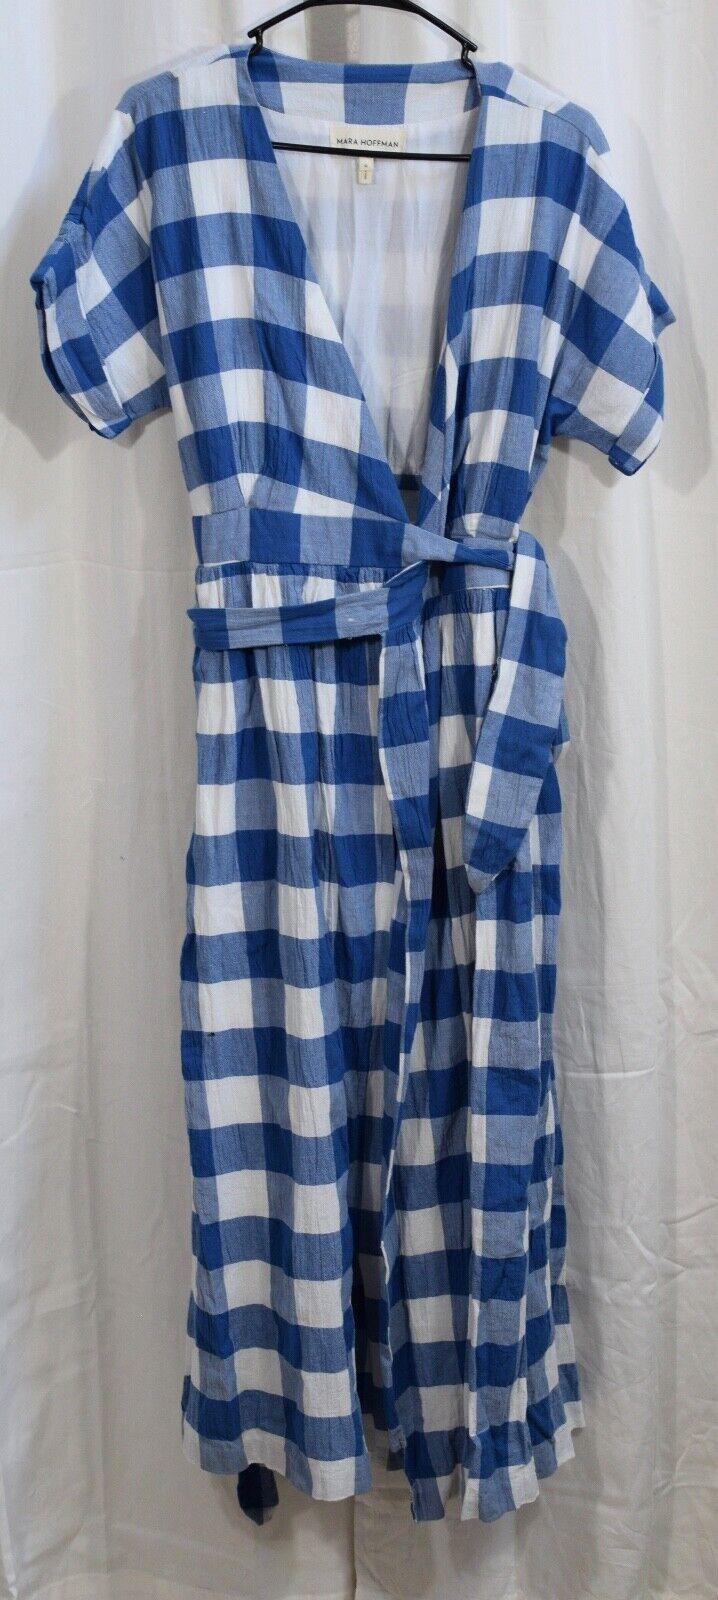 Mara Hoffman Ingrid kort Slieve Wrap Midi Dress Plaid blå  vit SIze Medium